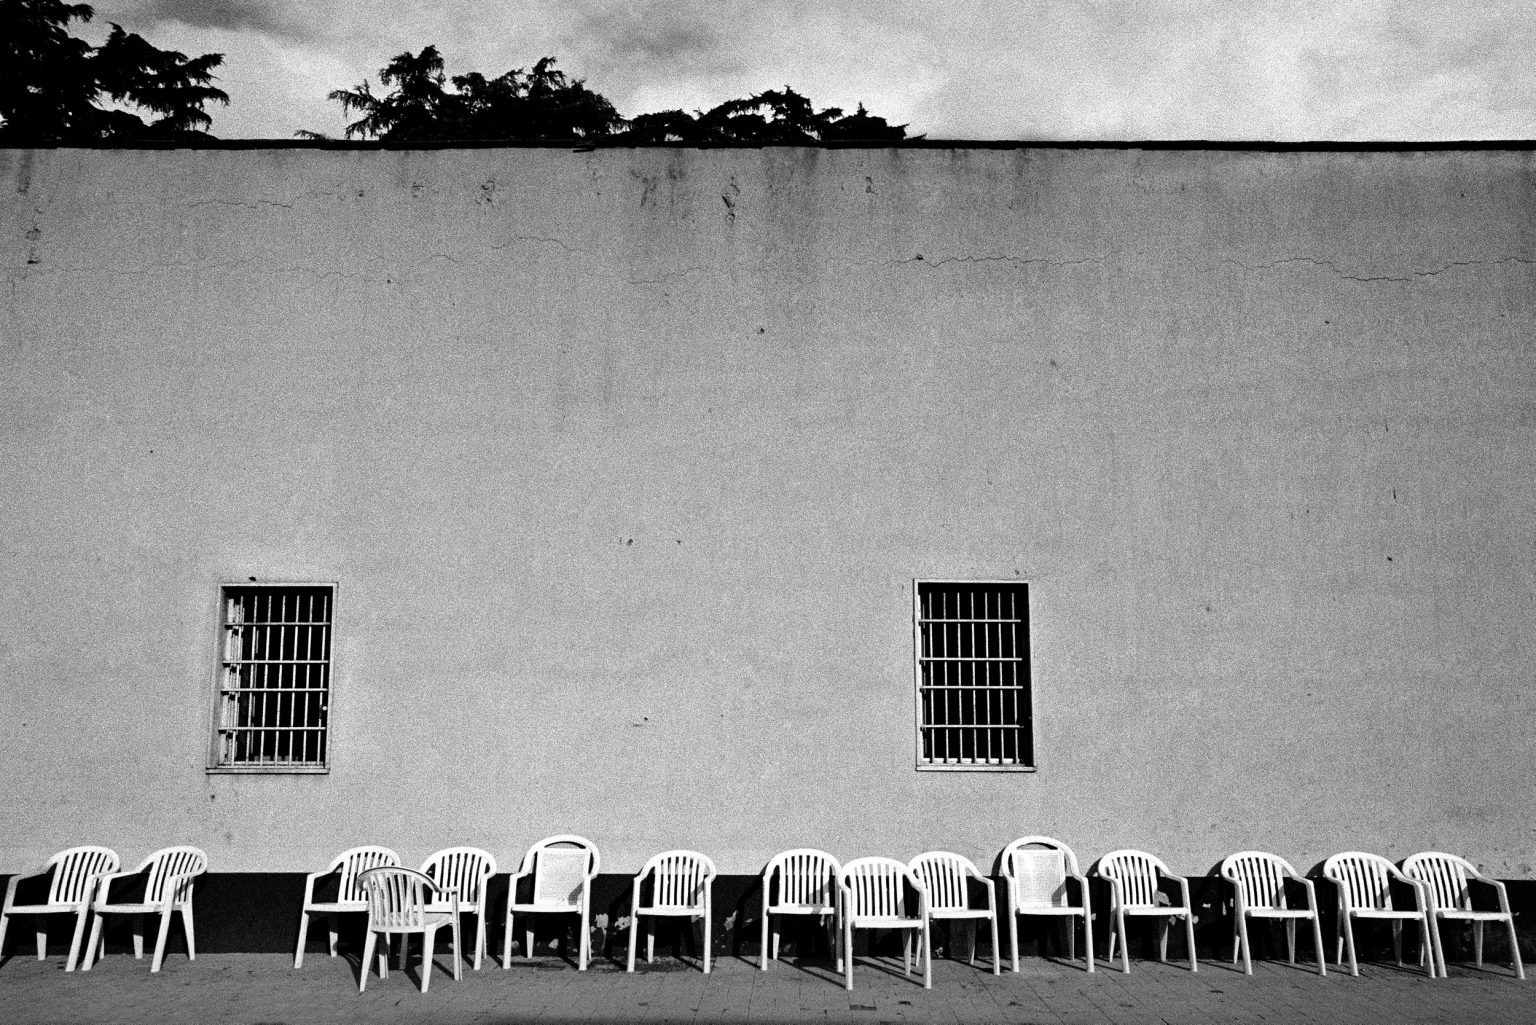 Chairs used by inmates to sunbathe in the hour of fresh air, courtyard of ward six. Judicial Psychiatric Hospital. Aversa, Caserta, Italy, 2007